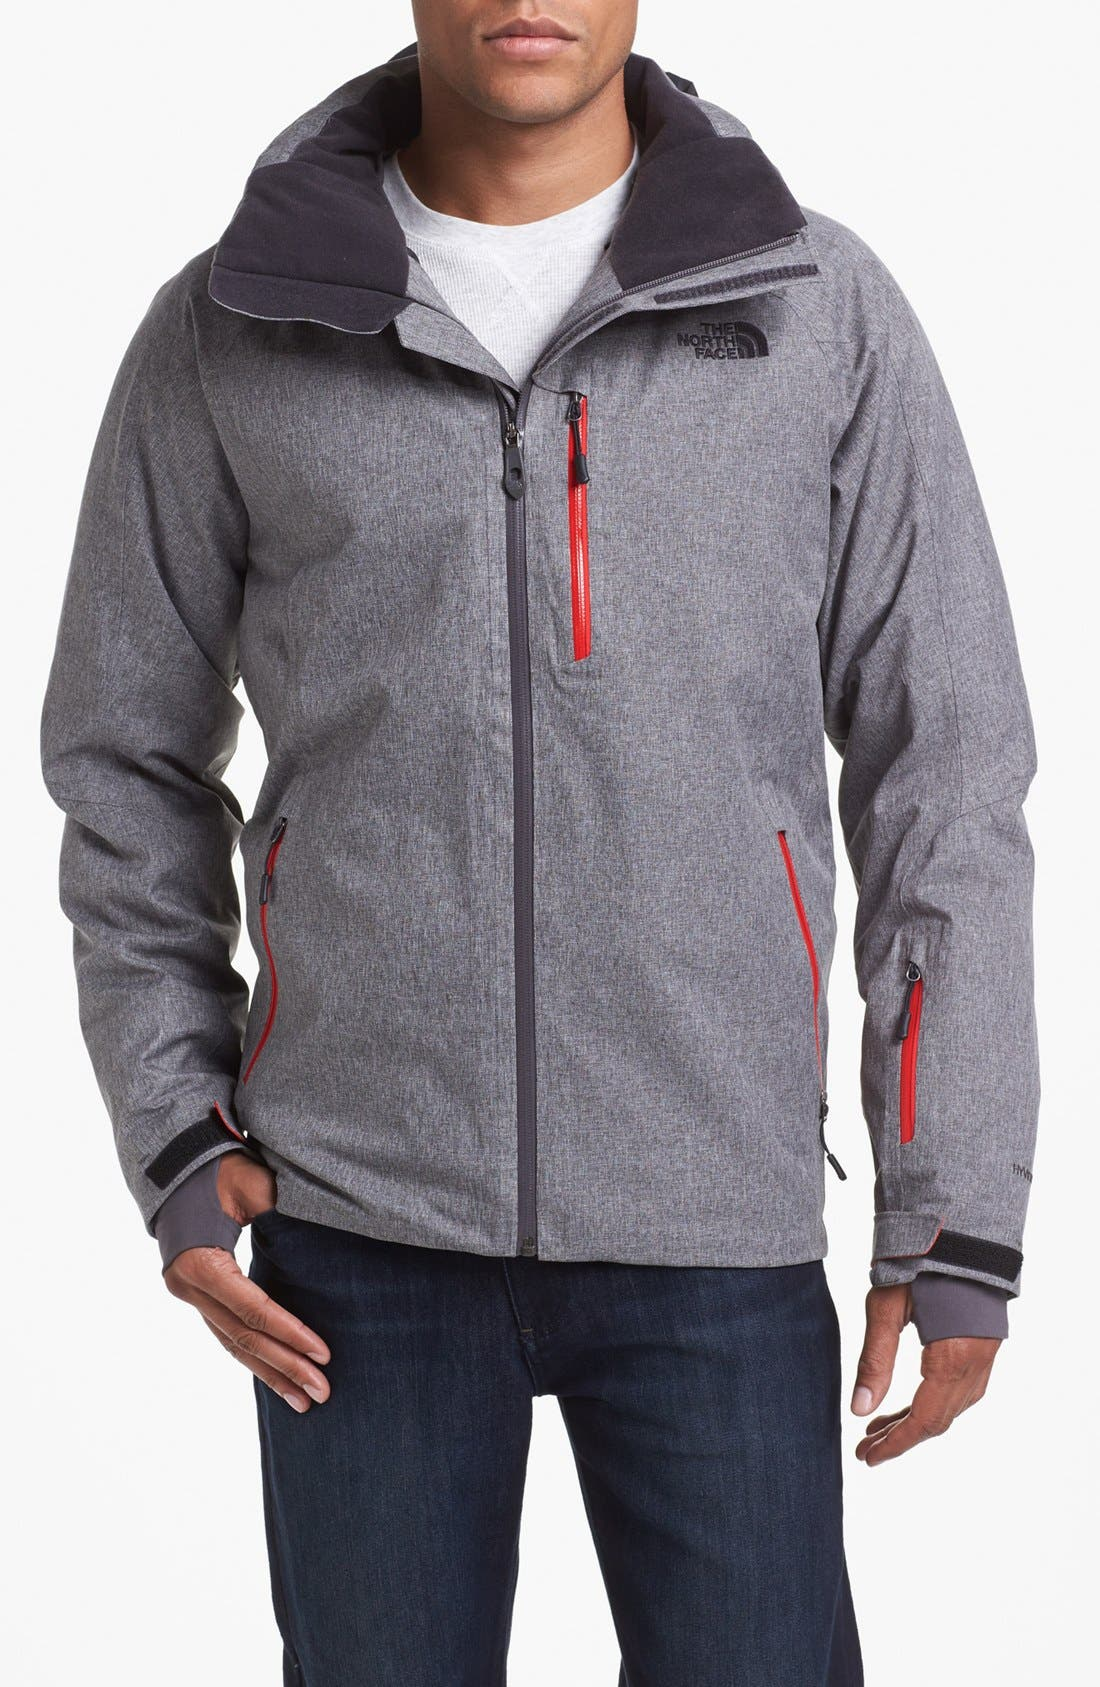 Alternate Image 1 Selected - The North Face 'Furano' Jacket